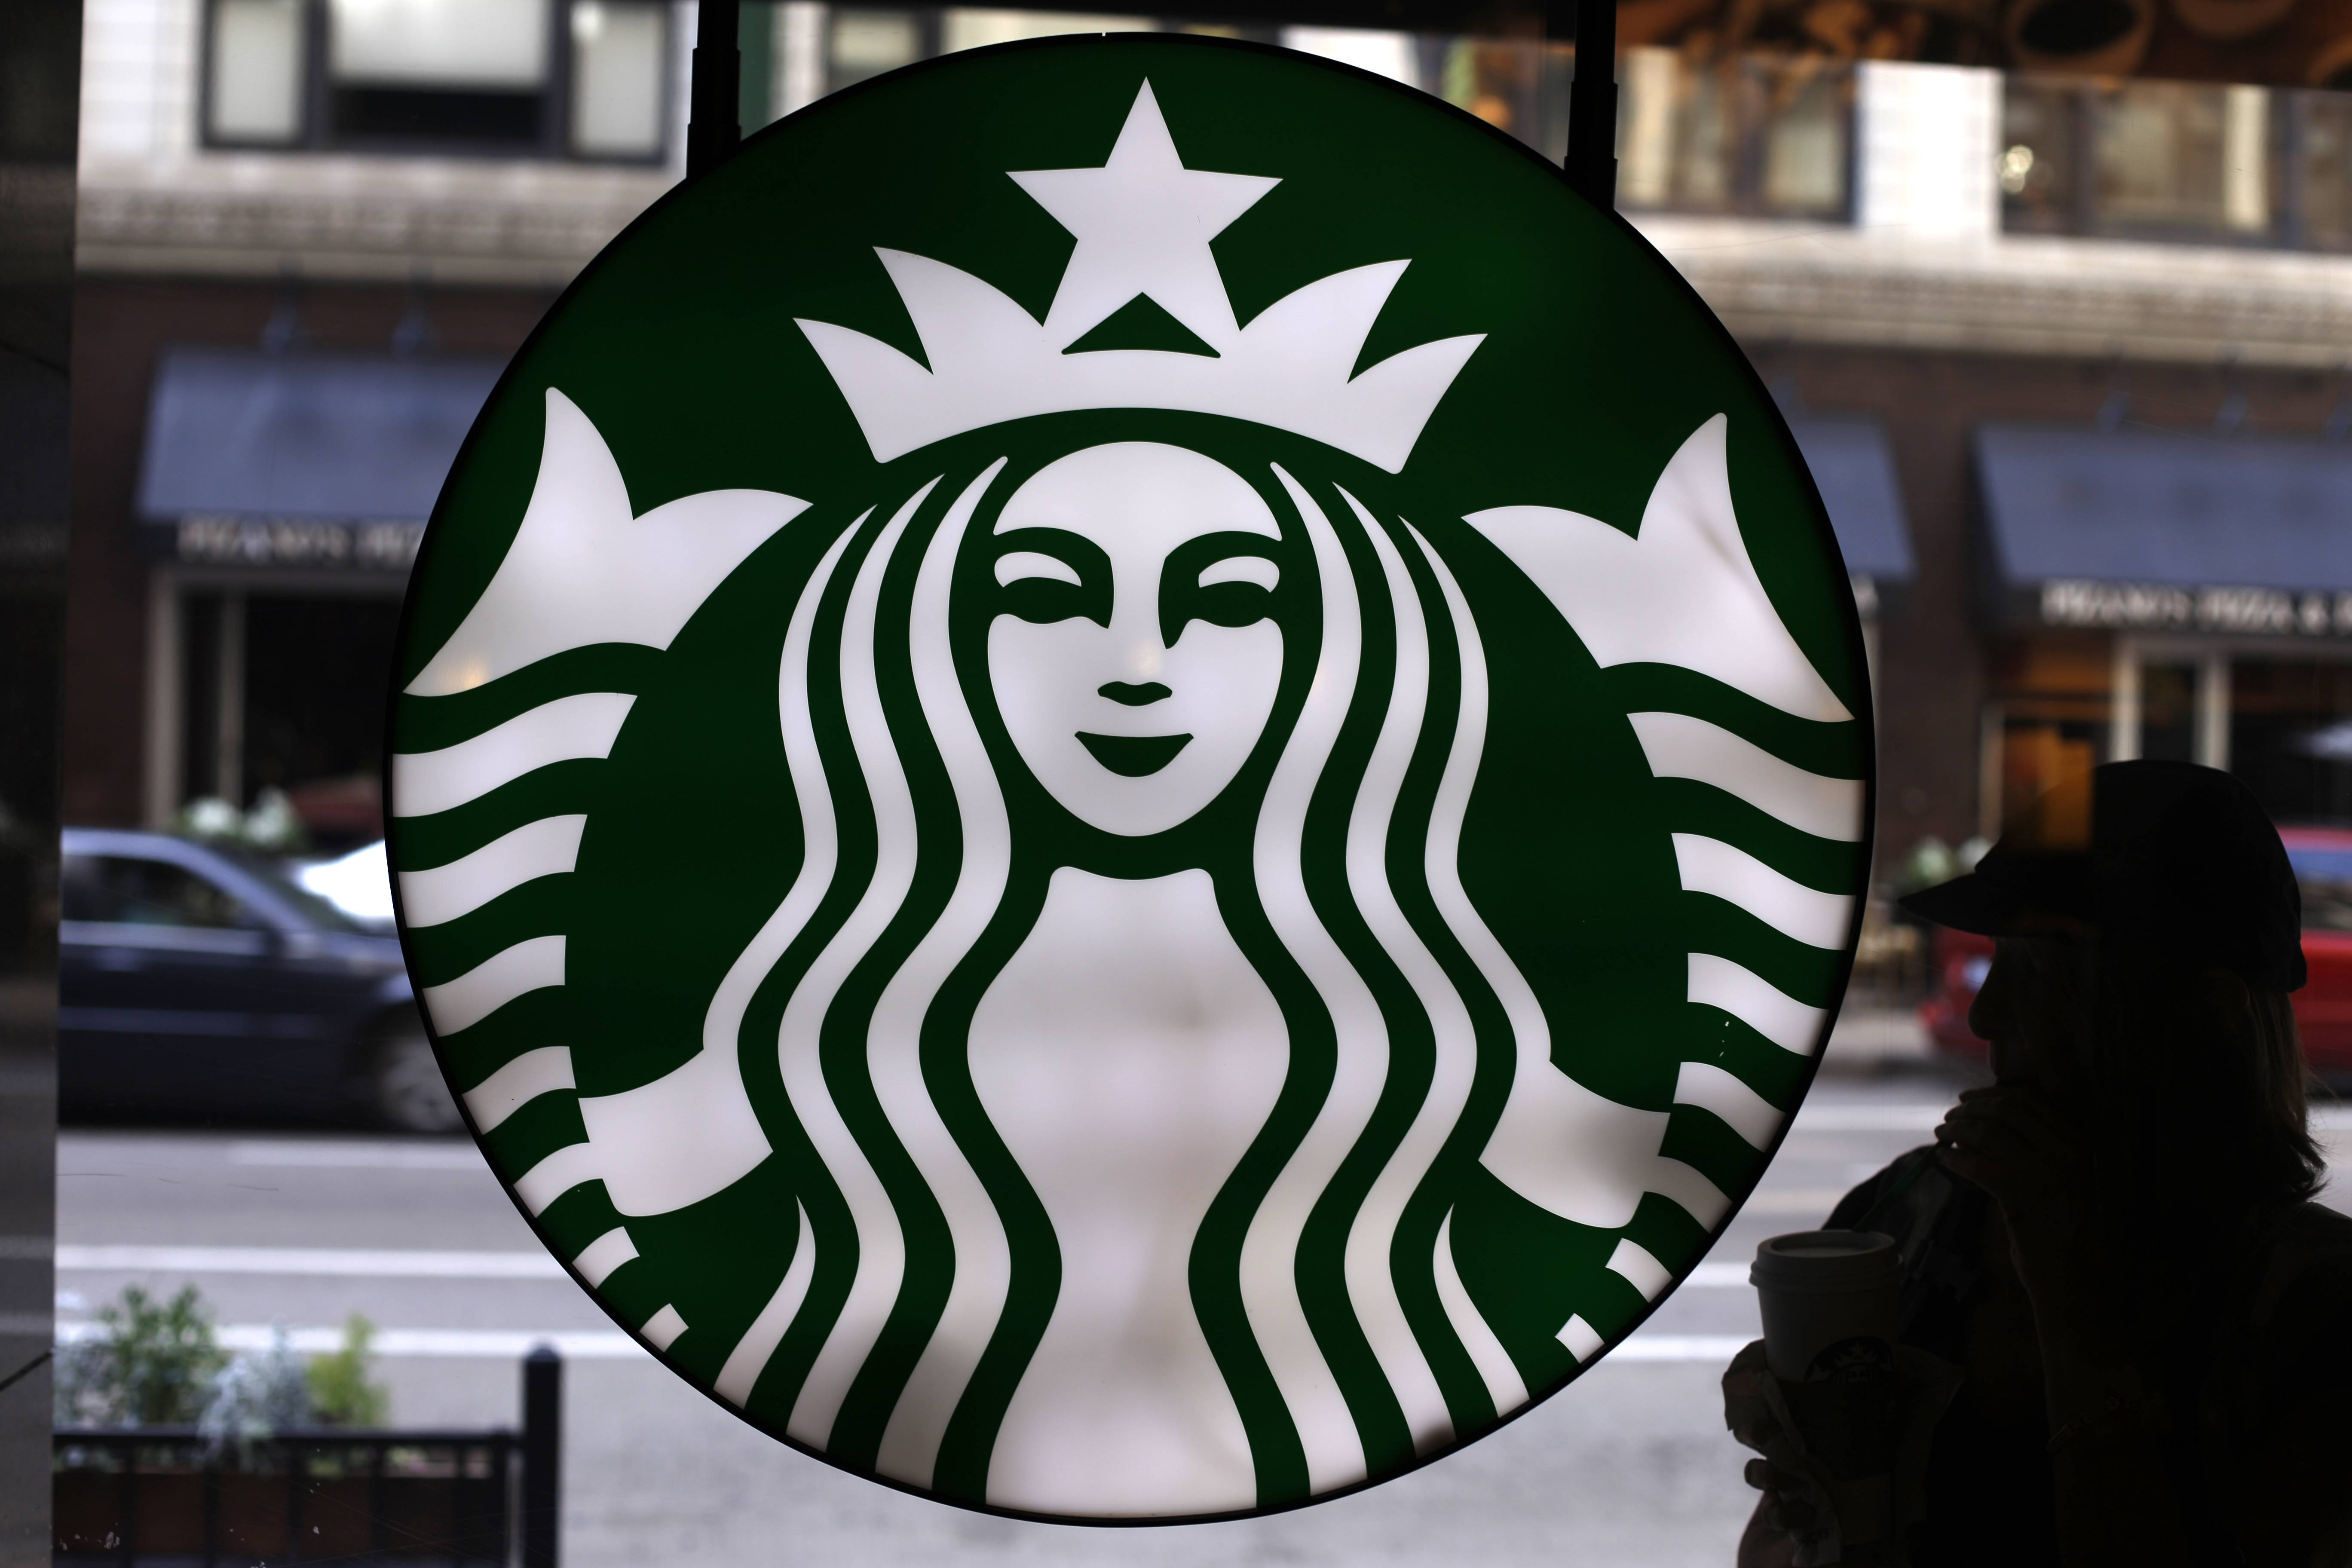 Starbucks confirmed Thursday that the scholarship is a reduced tuition rate from Arizona State. It estimates the reduction in tuition would average about $6,500 over two years for total tuition of $30,000 for the freshman and sophomore years.